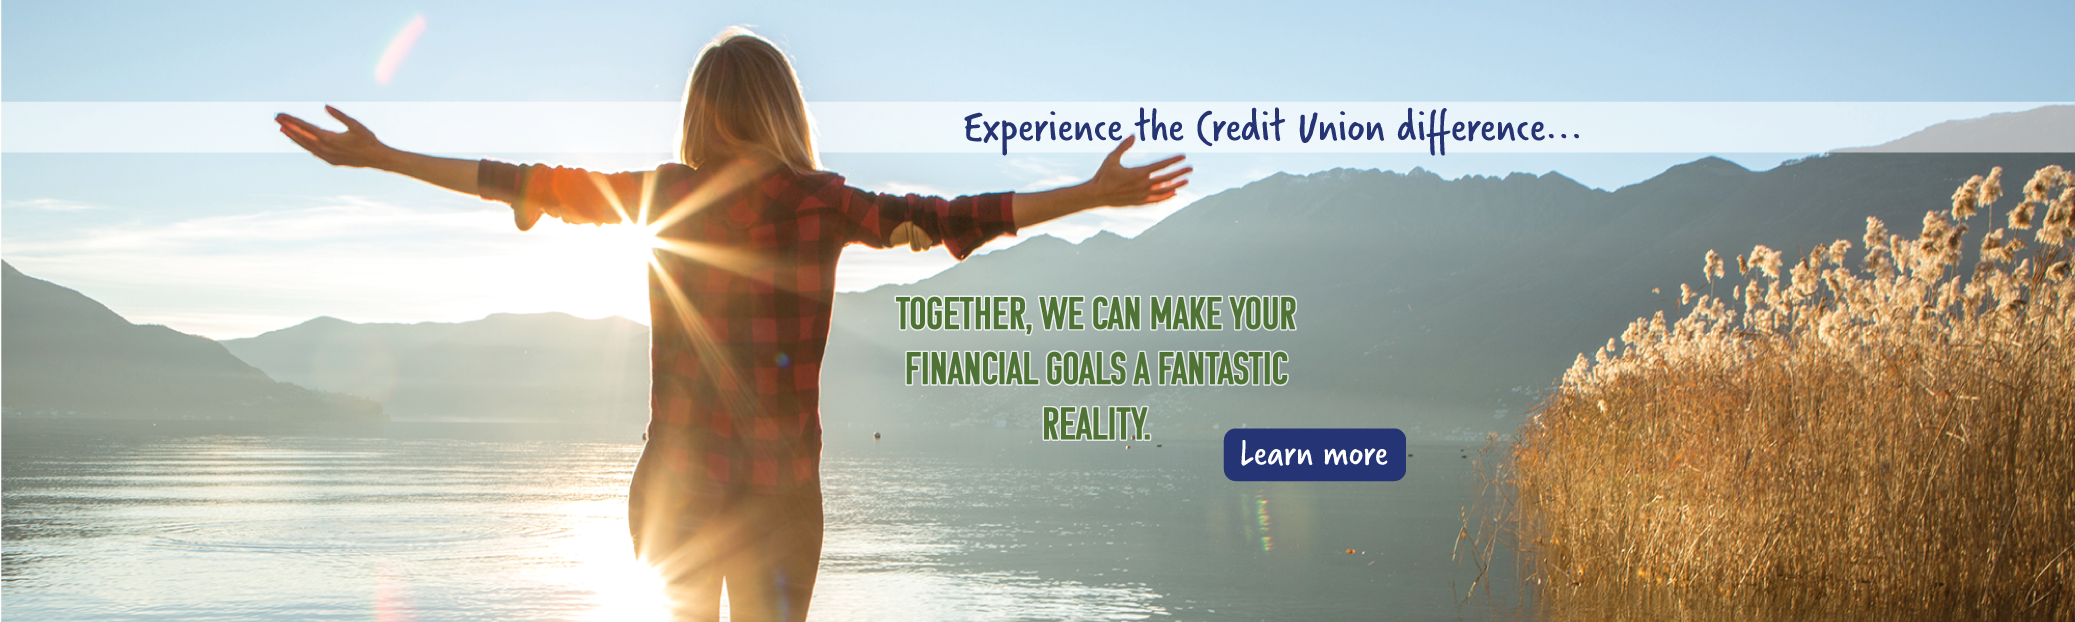 Expereince the Credit Union Difference